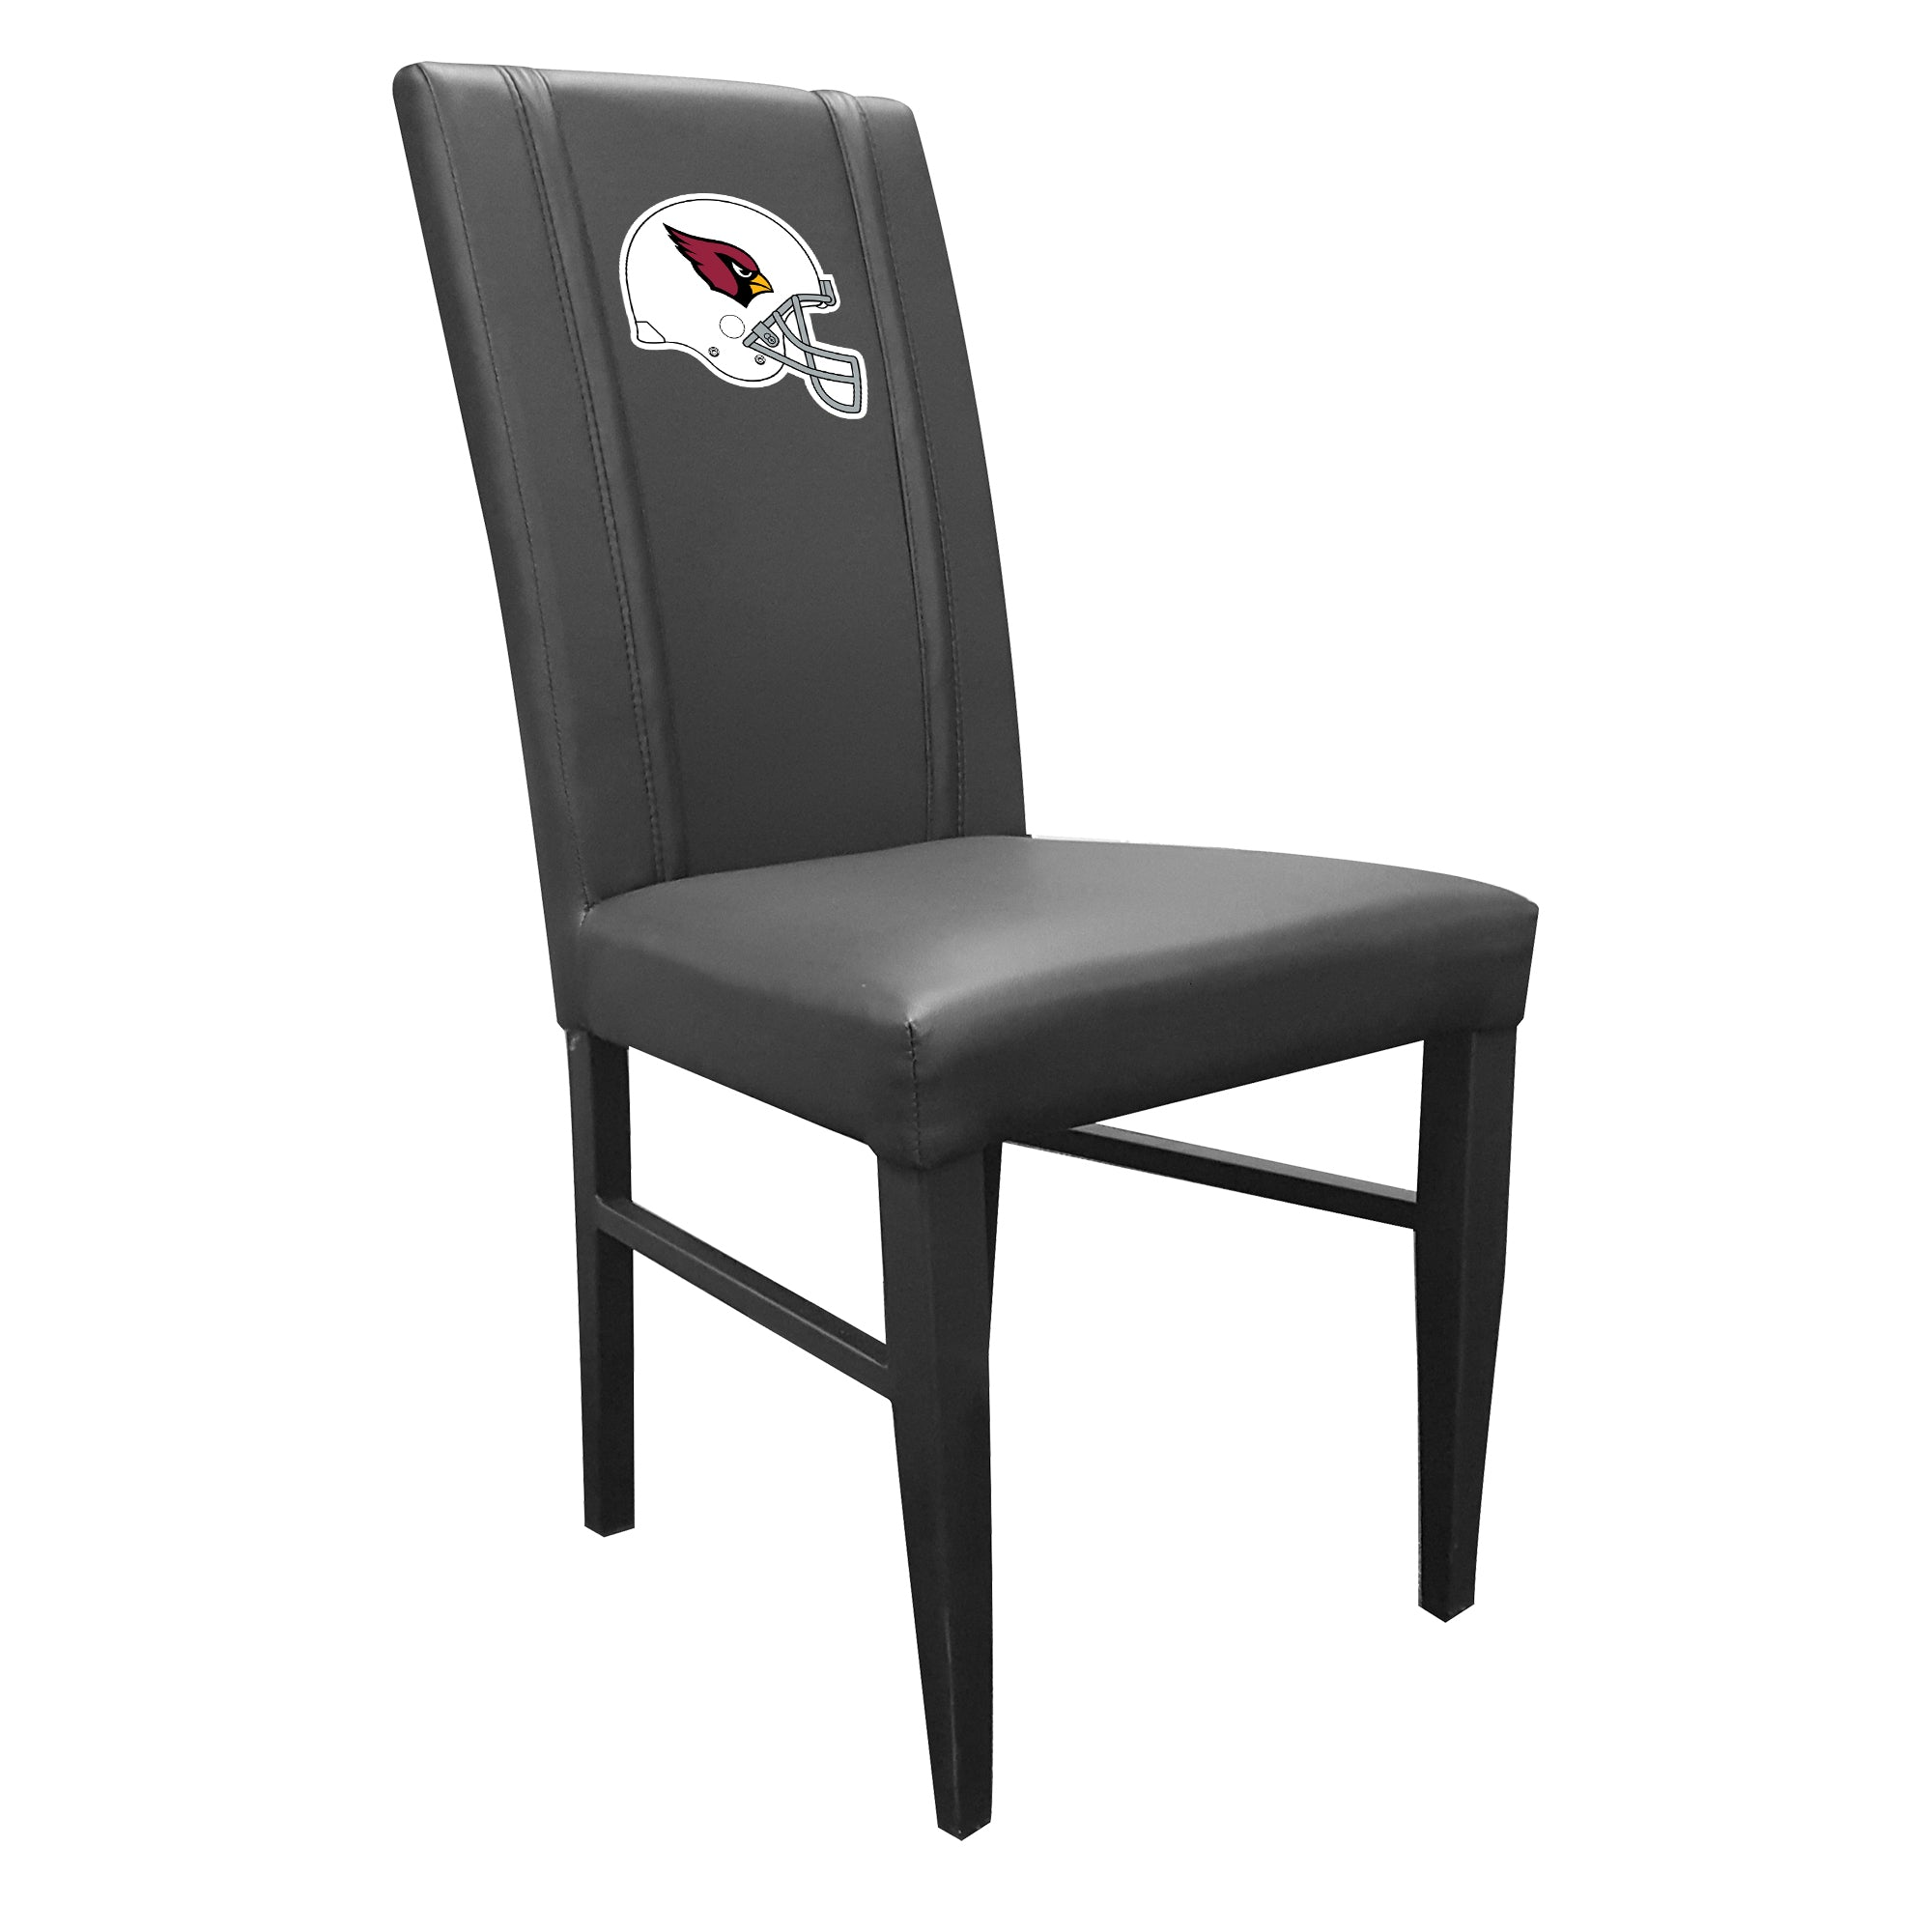 Side Chair 2000 with Arizona Cardinals Helmet Logo